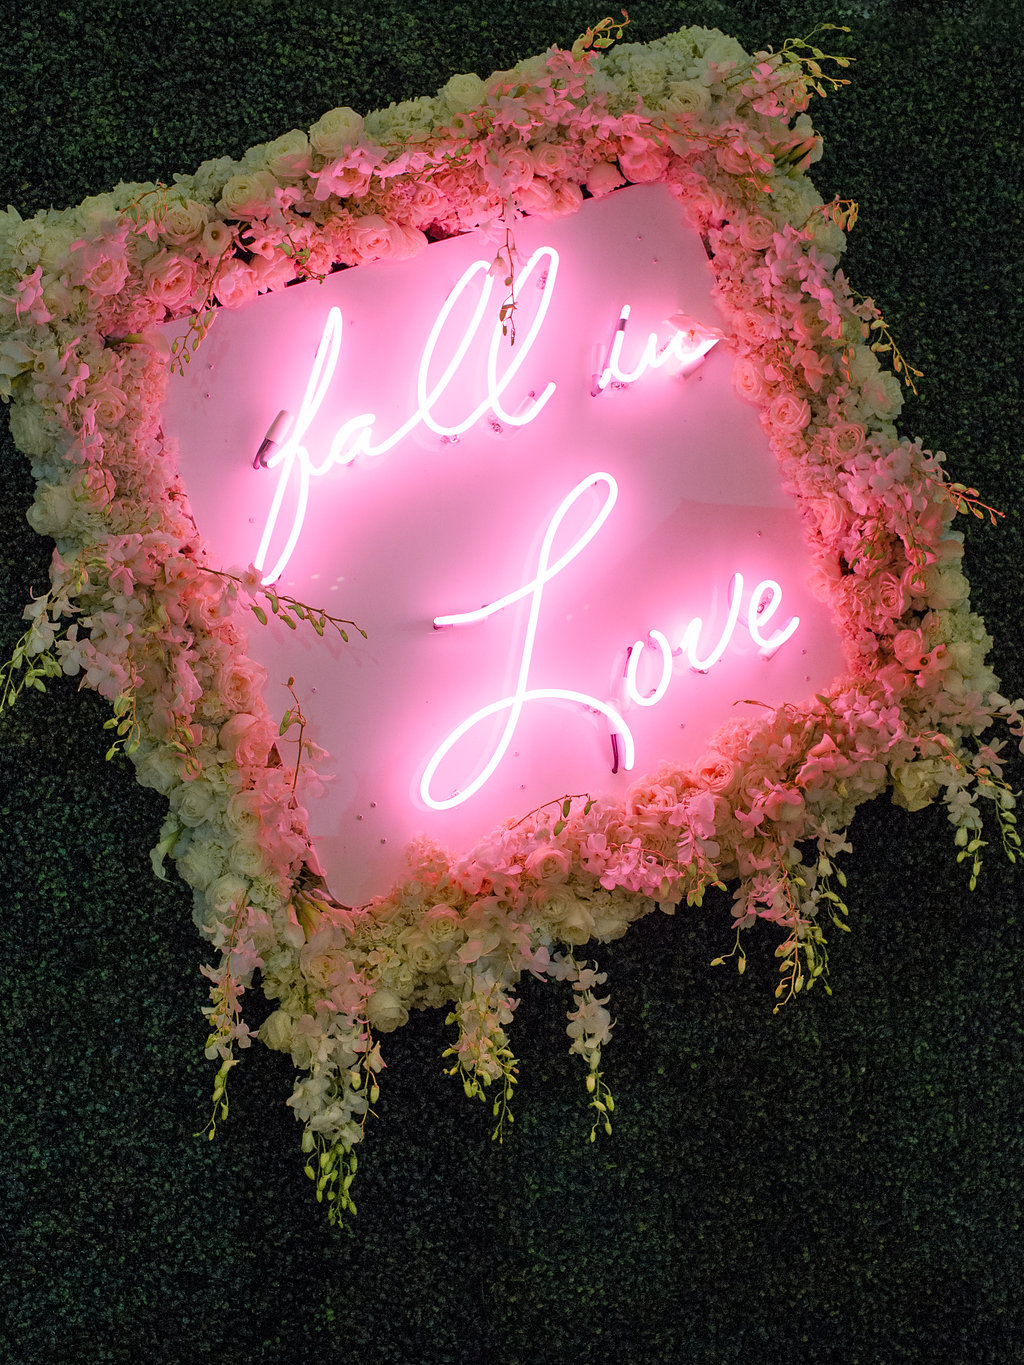 neon sign wedding ideas pink neon signage fall in love white flowers